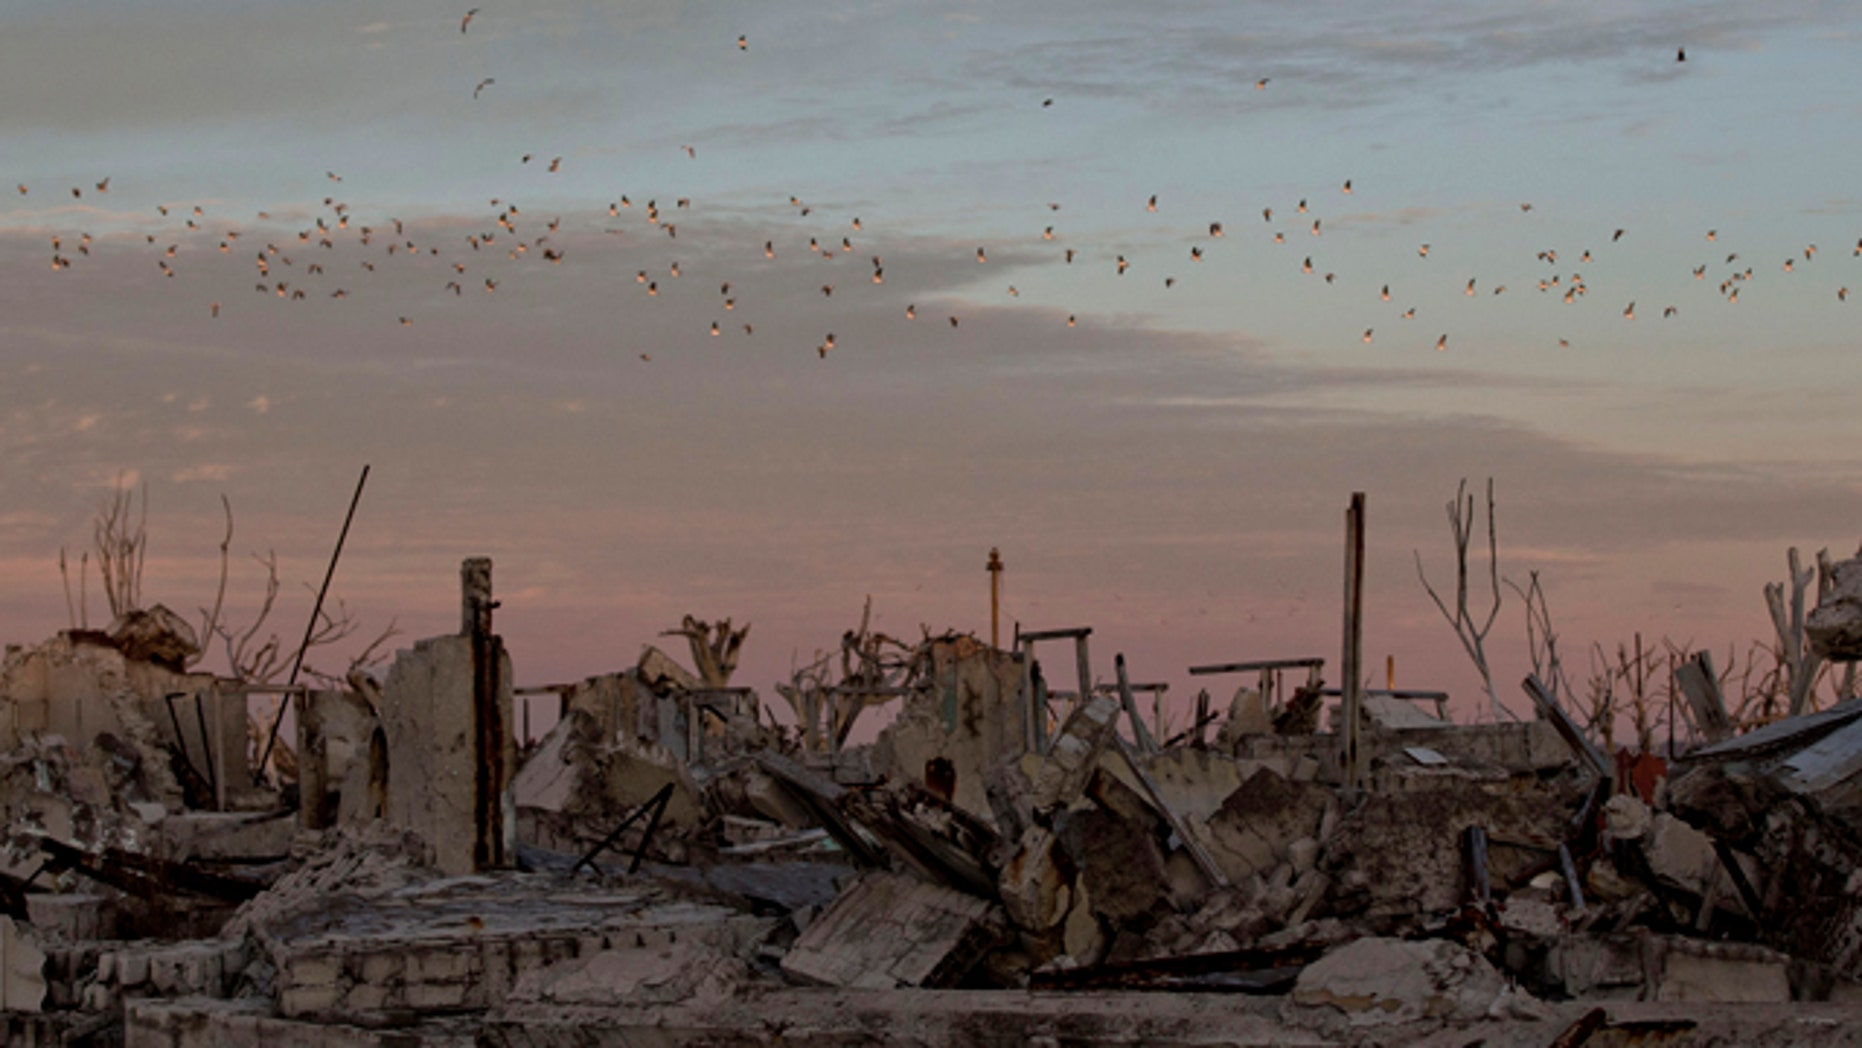 May 7, 2013: Birds fly over the village of Epecuen, Argentina.